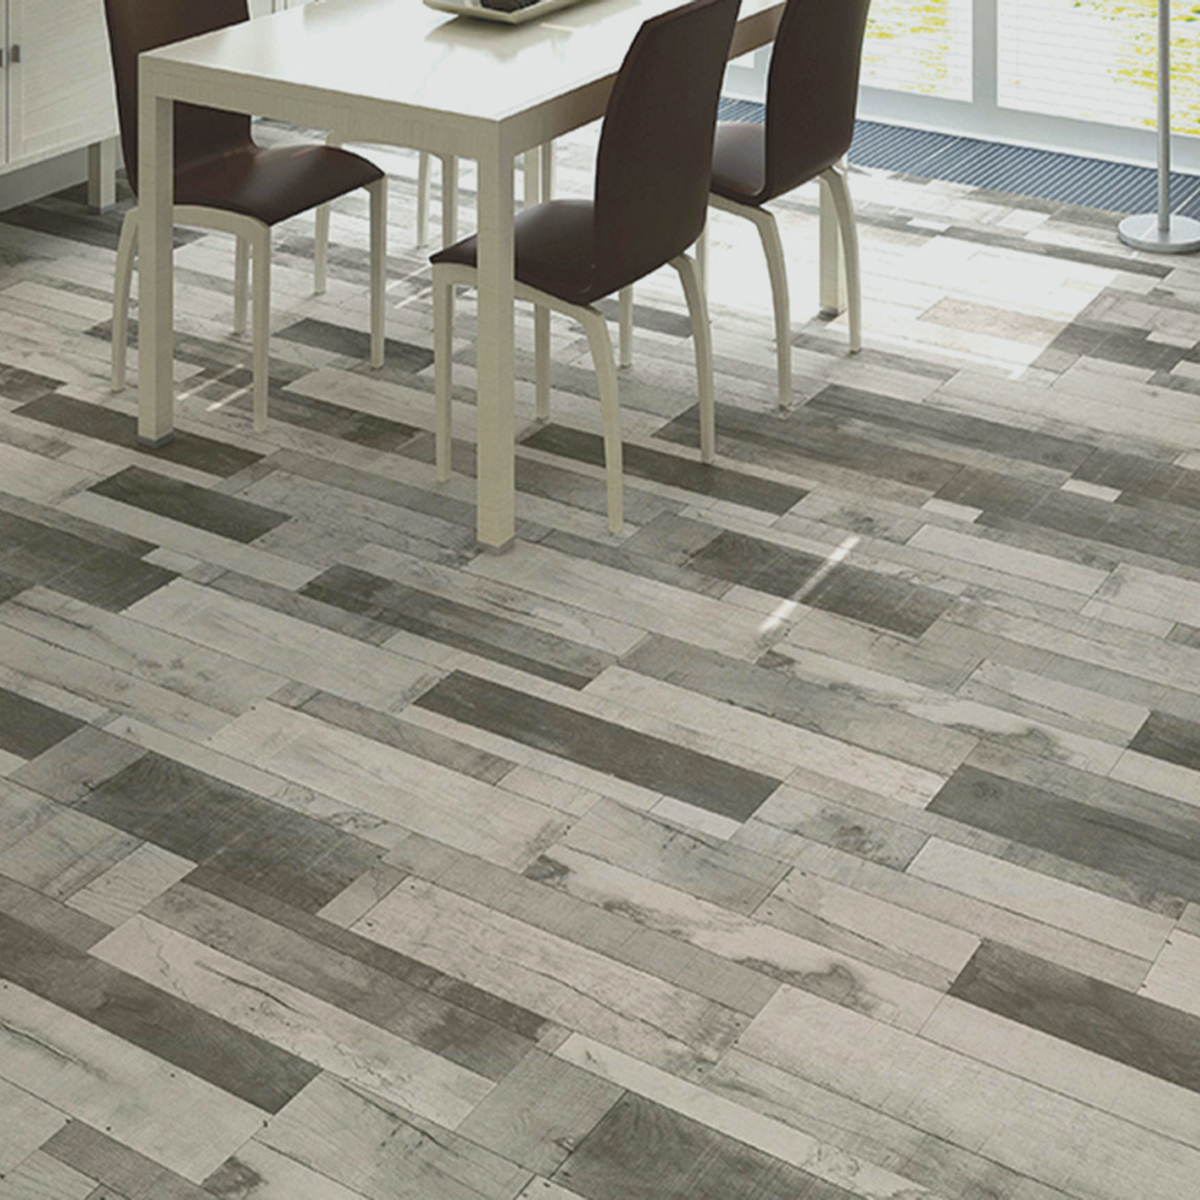 Wood Effect Floor Tiles Crown Tiles